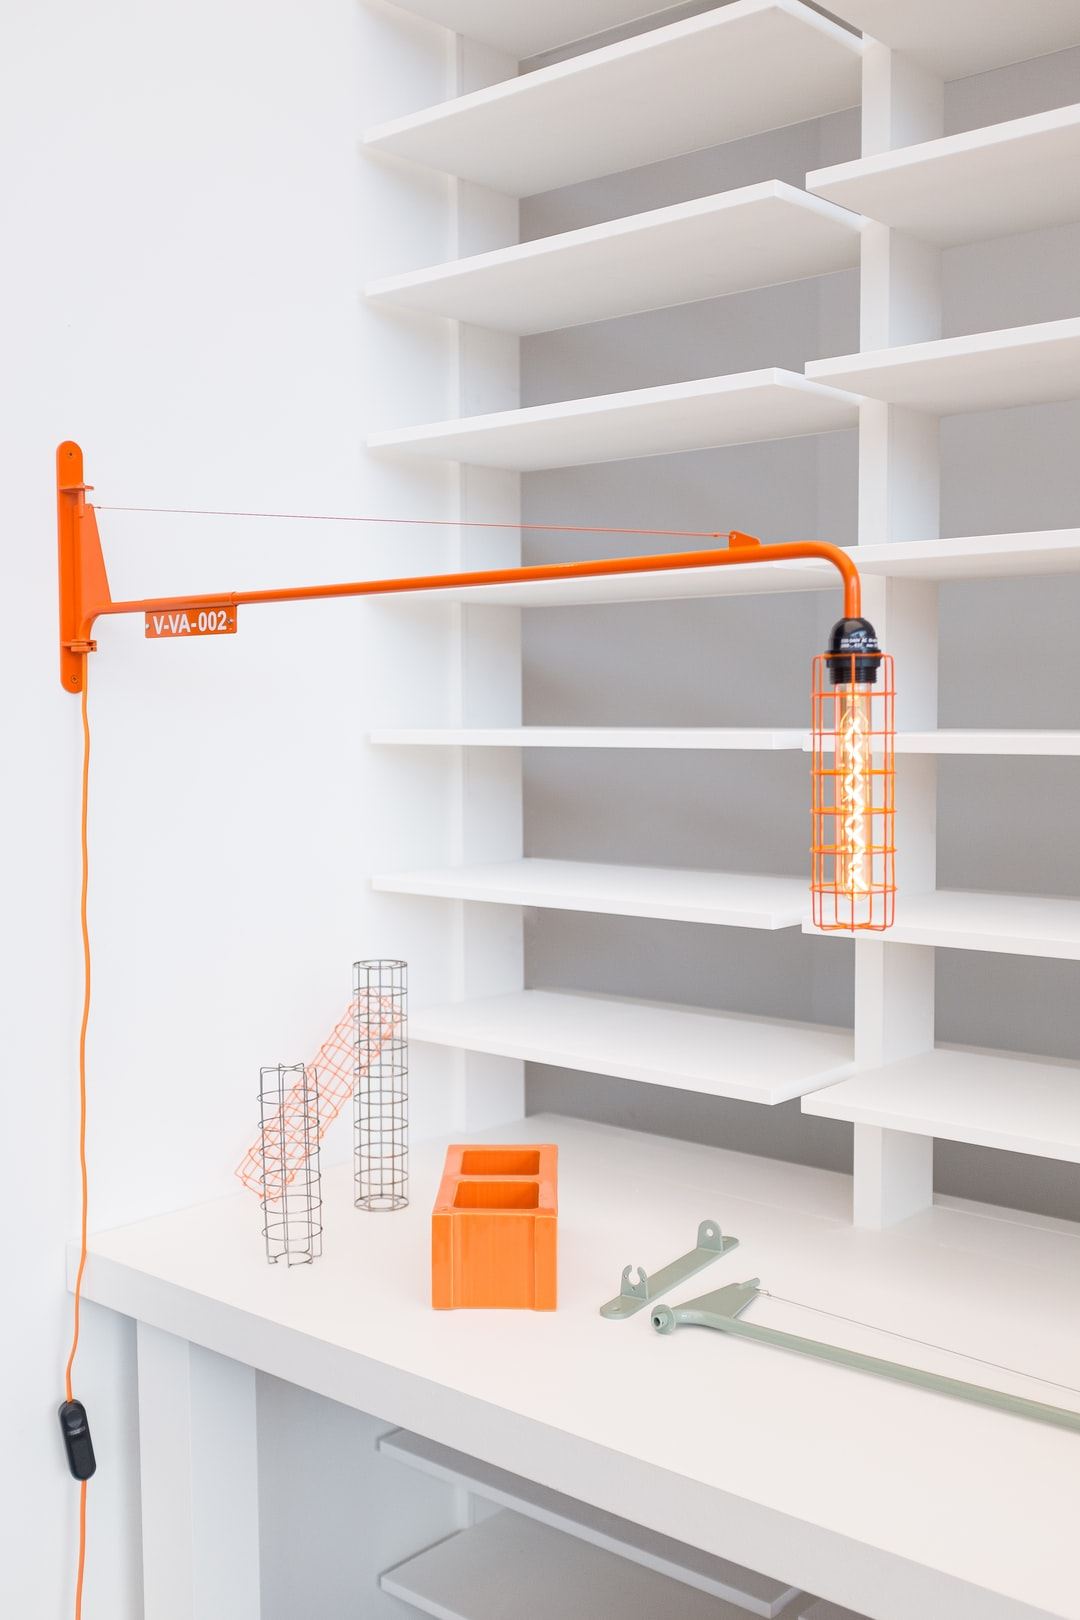 VITRA Luminaire Potence by Jean Prouvé, Redesigned by Virgil Abloh